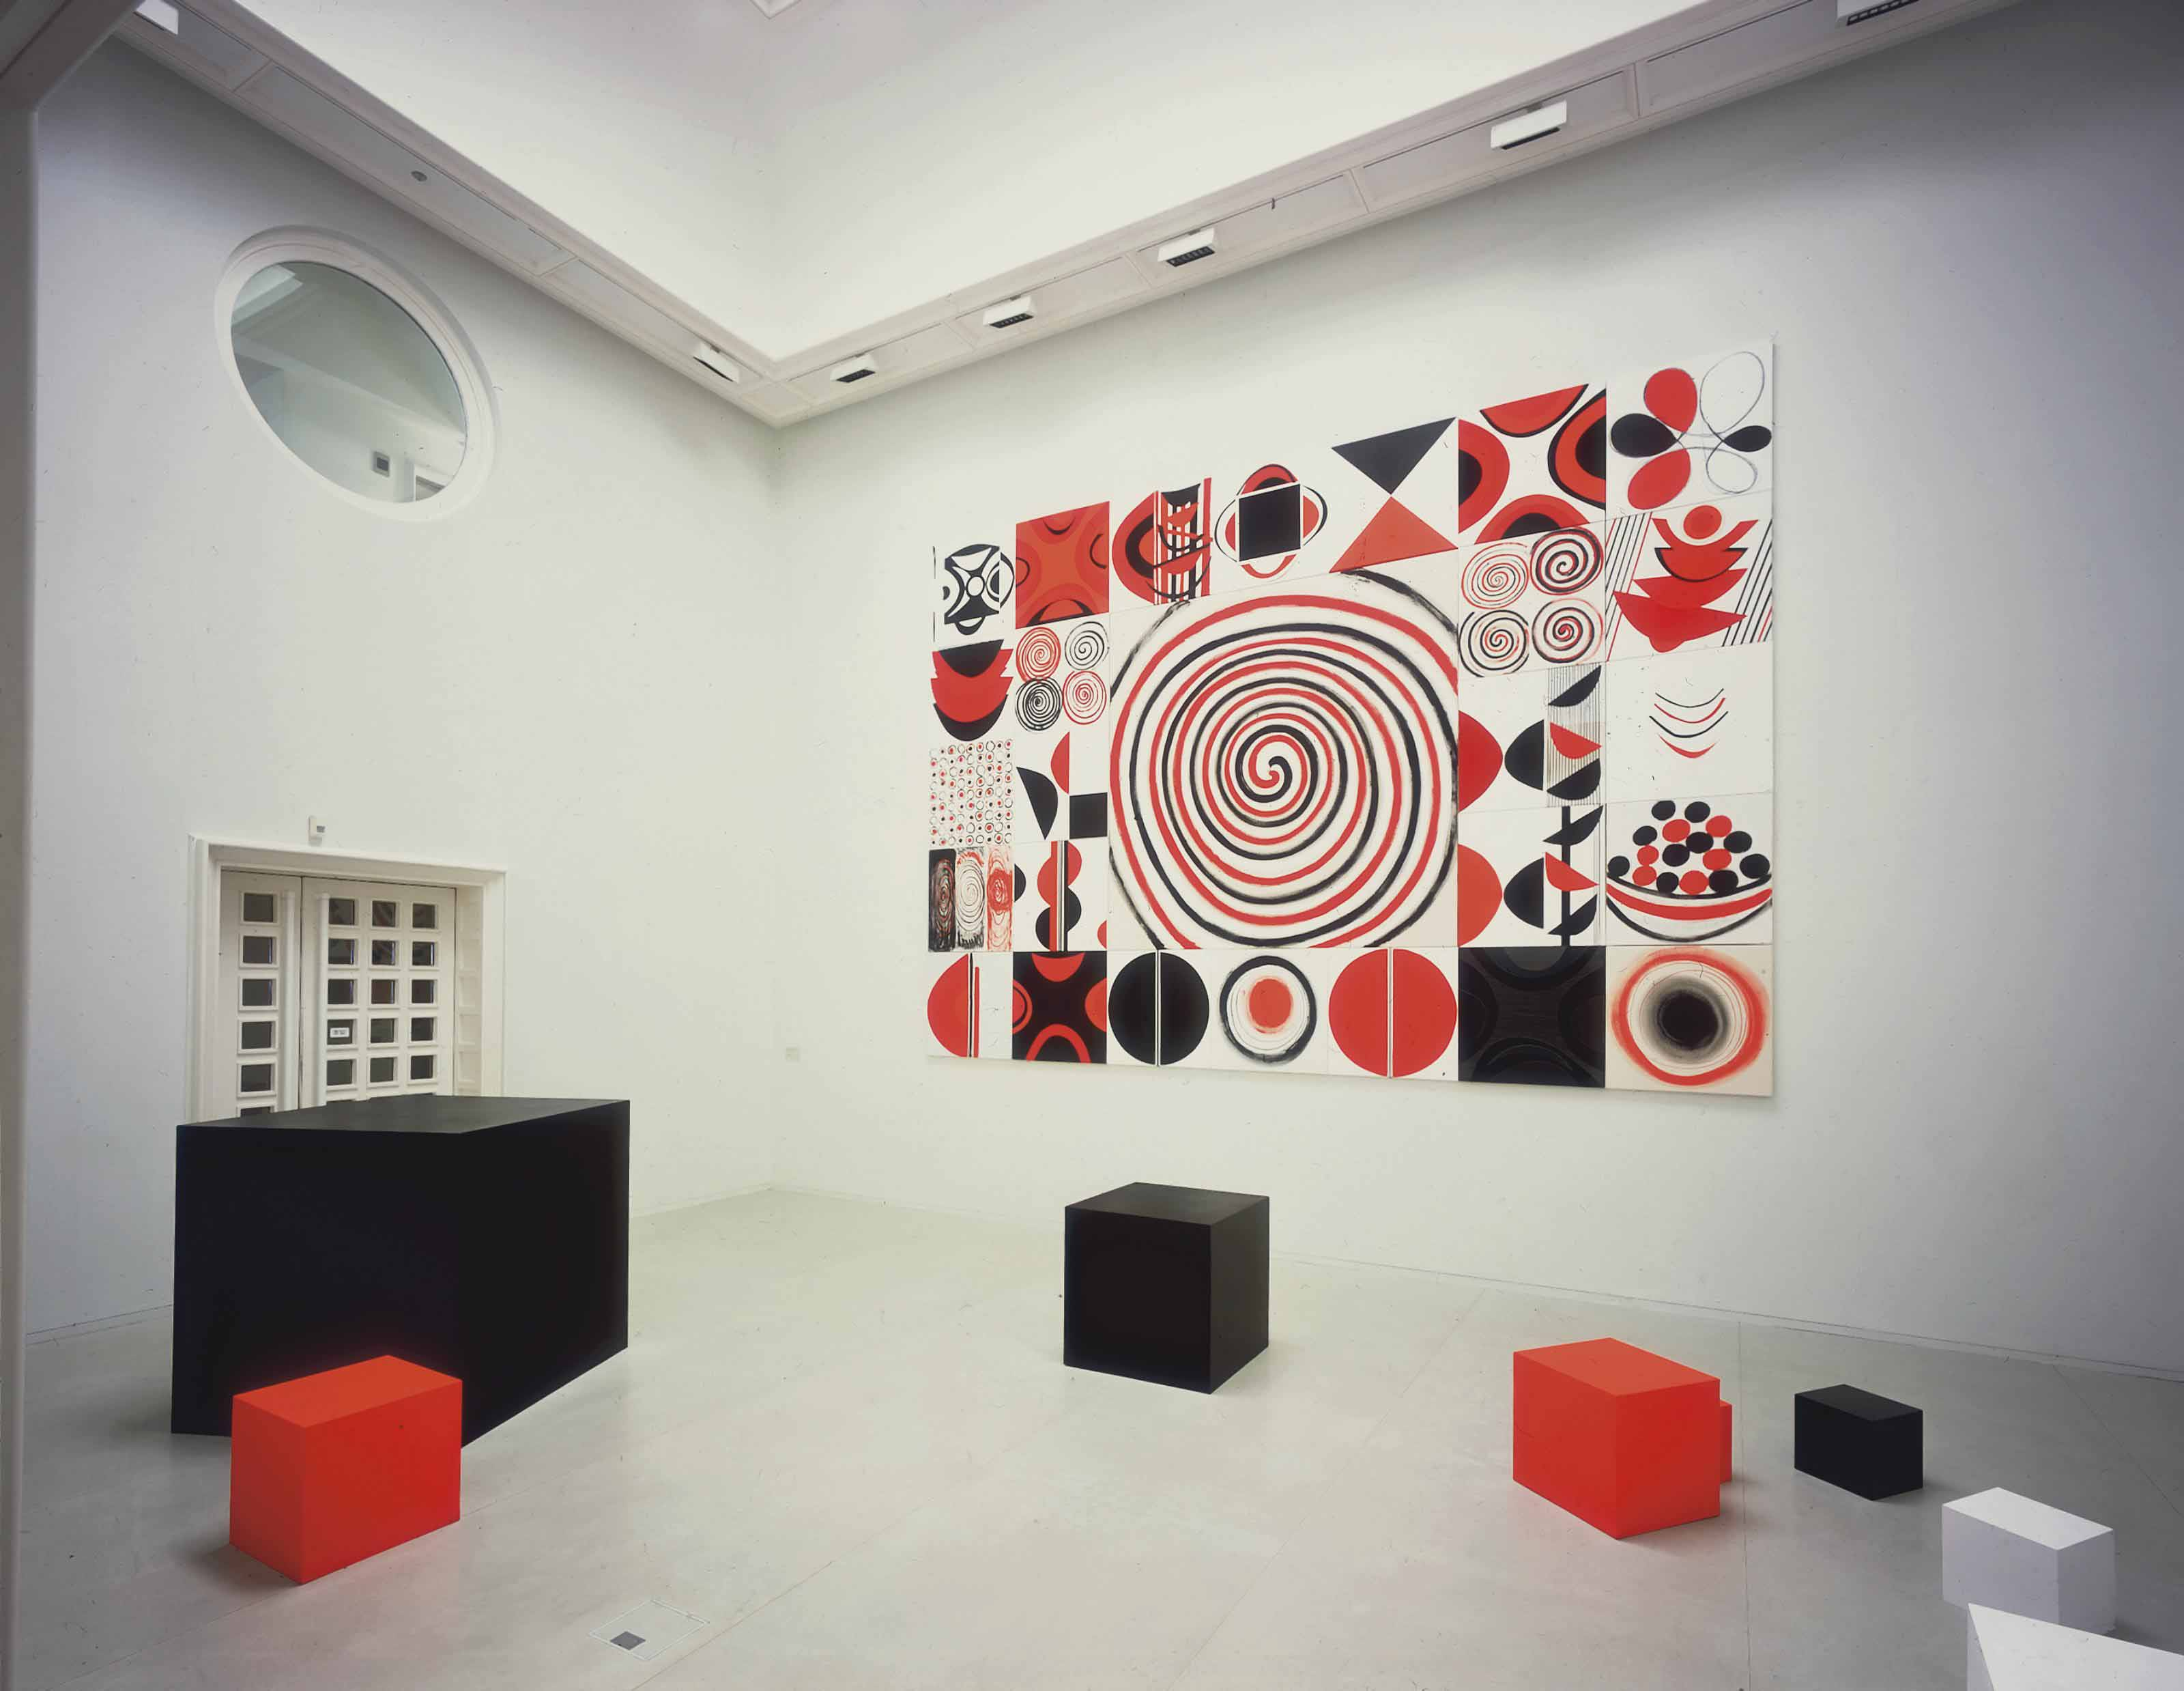 Installation - Contrasts in Red, Black and White